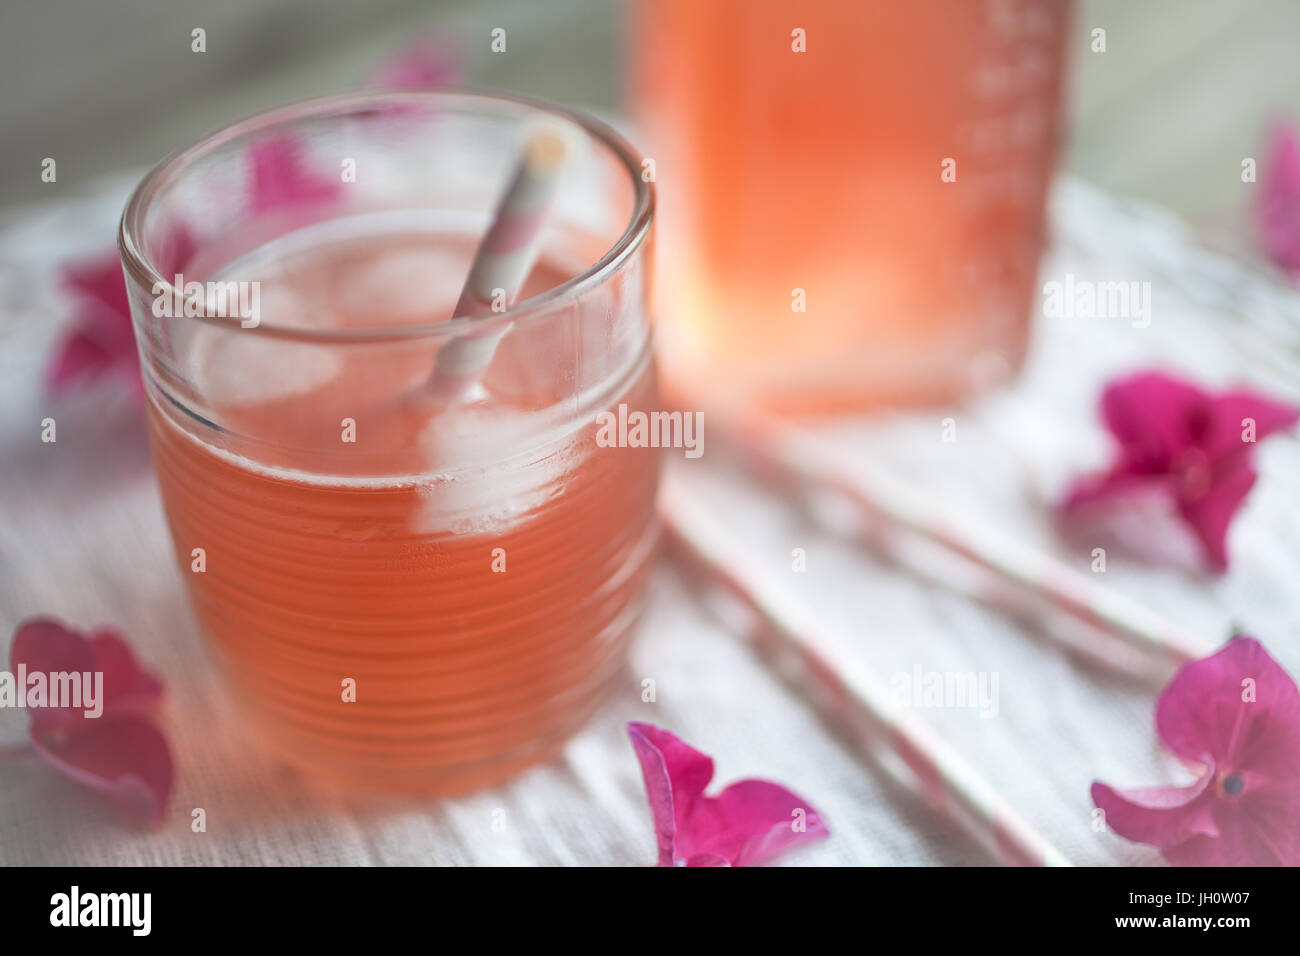 Homemade juice with rhubarb and strawberries - Stock Image